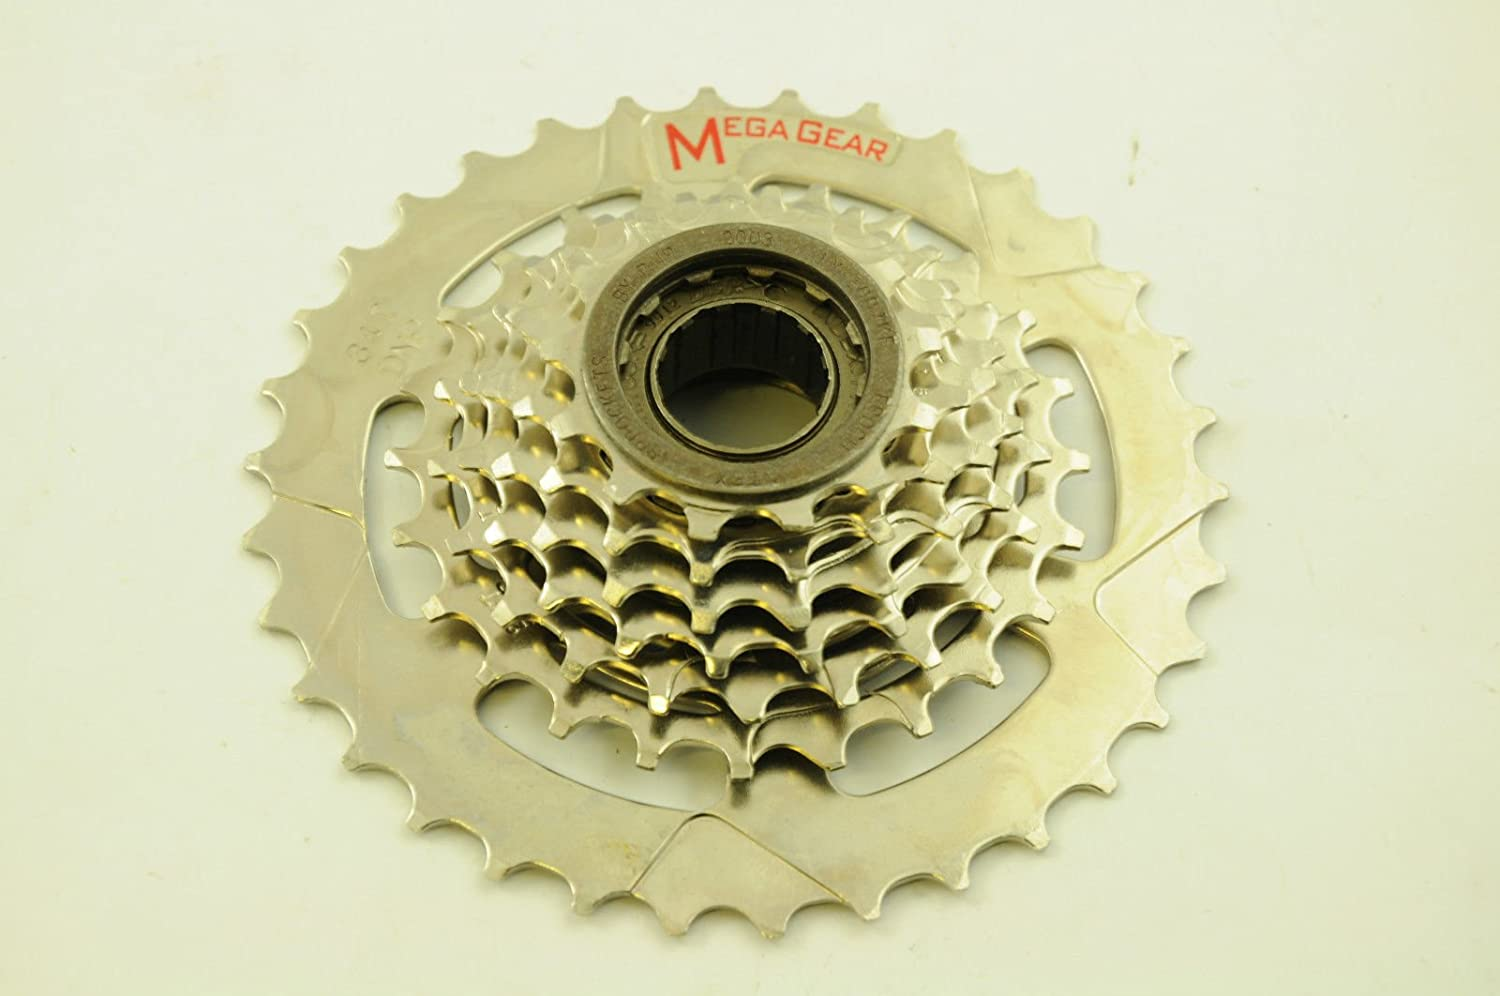 Flight Tracker Sunrace 7 Speed 13-28 Freewheel Sporting Goods Bicycle Components & Parts